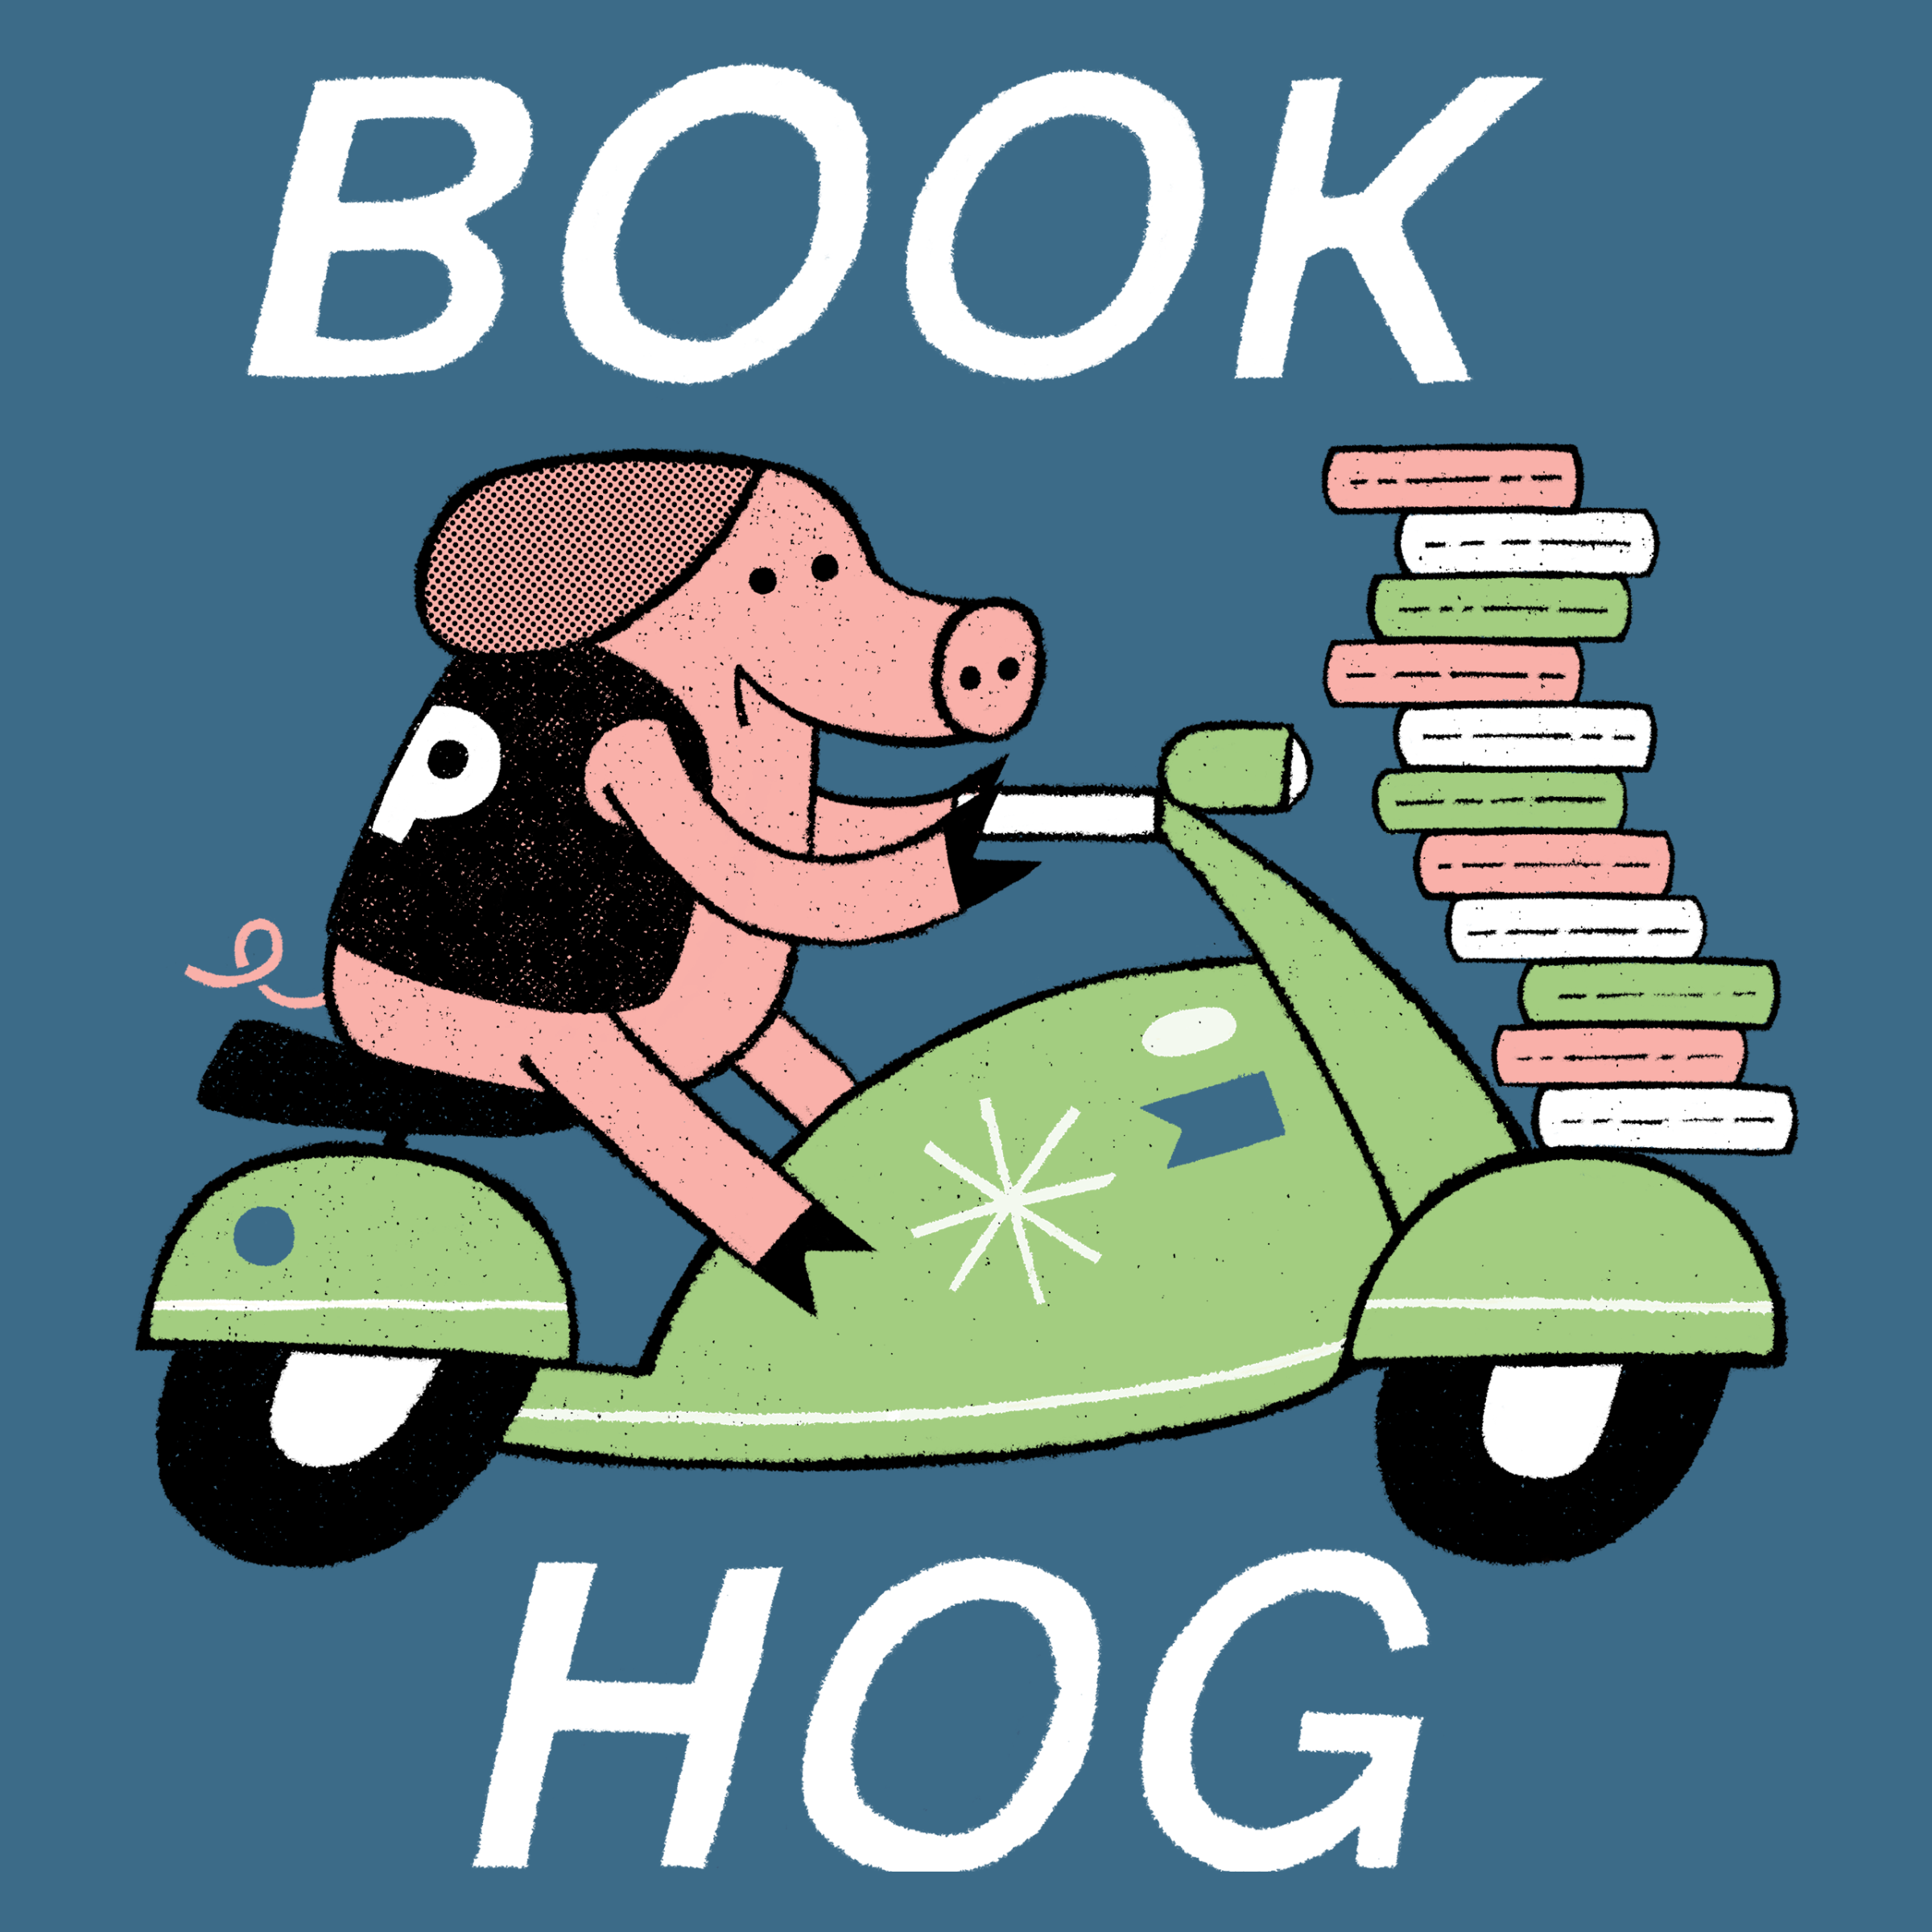 Book Hog! Detail